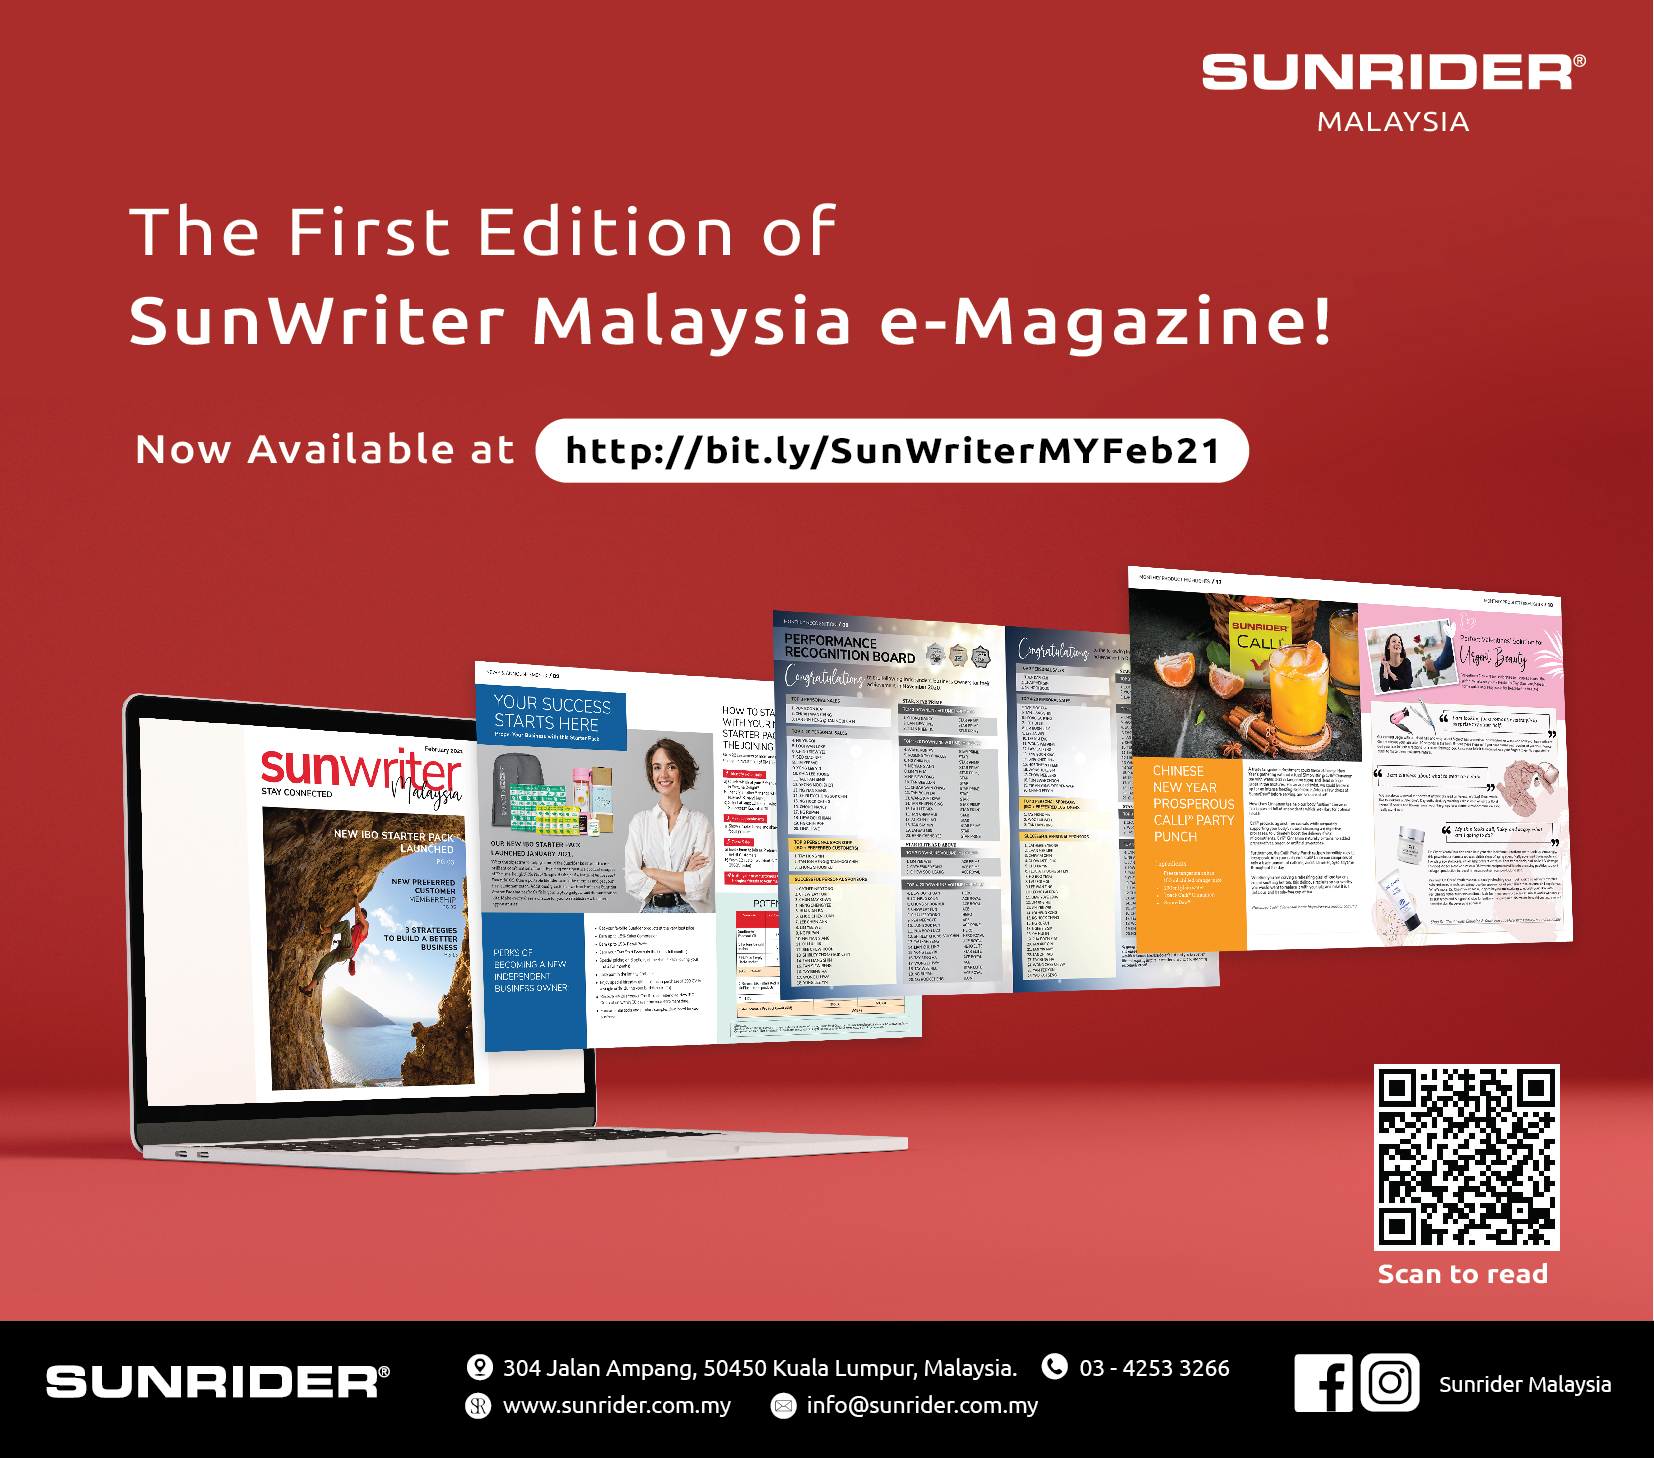 The First Edition of SunWriter Malaysia!